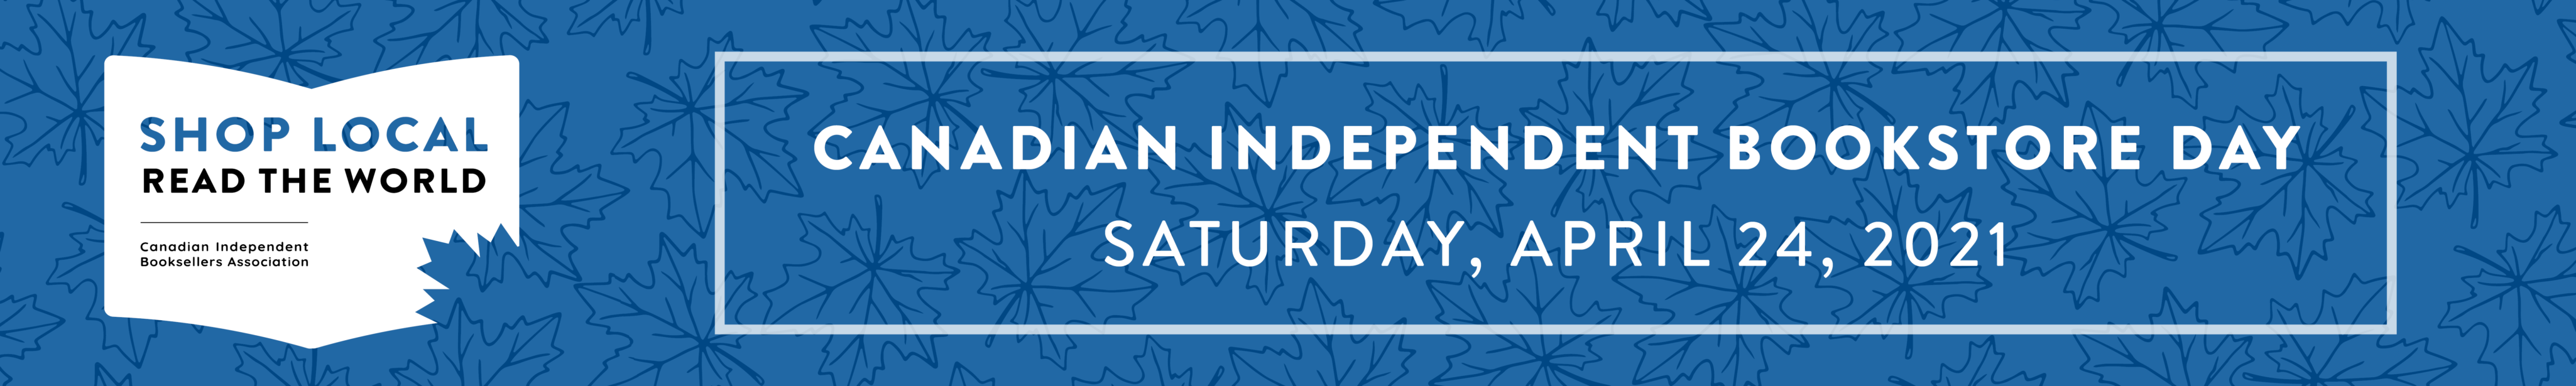 Canadian Independent Bookstore Day banner